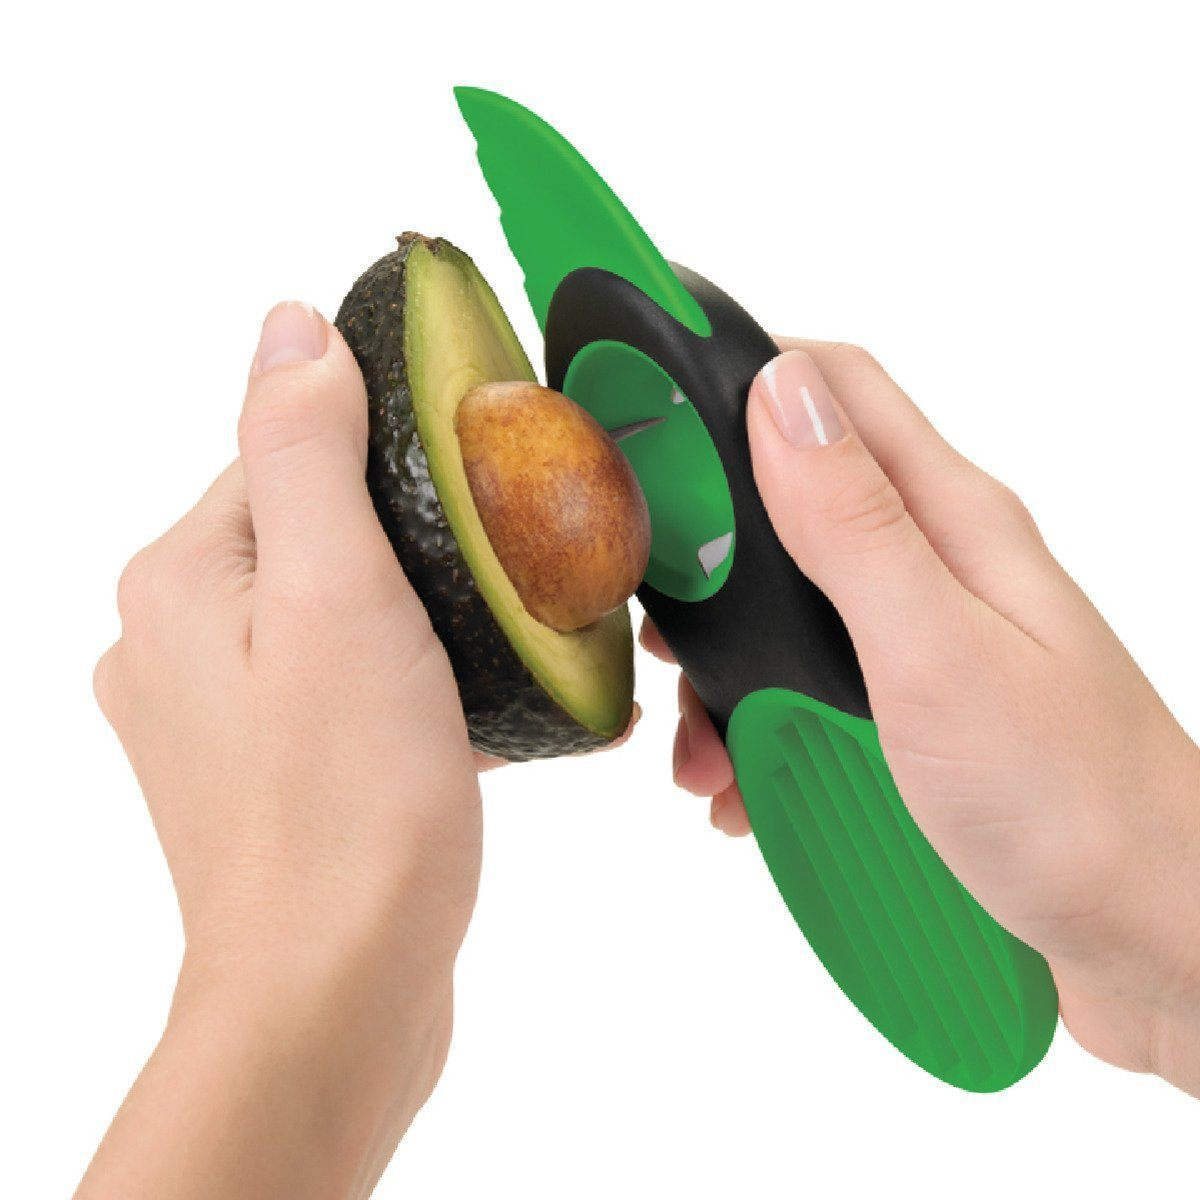 All In One Avocado Slicer - Clevativity